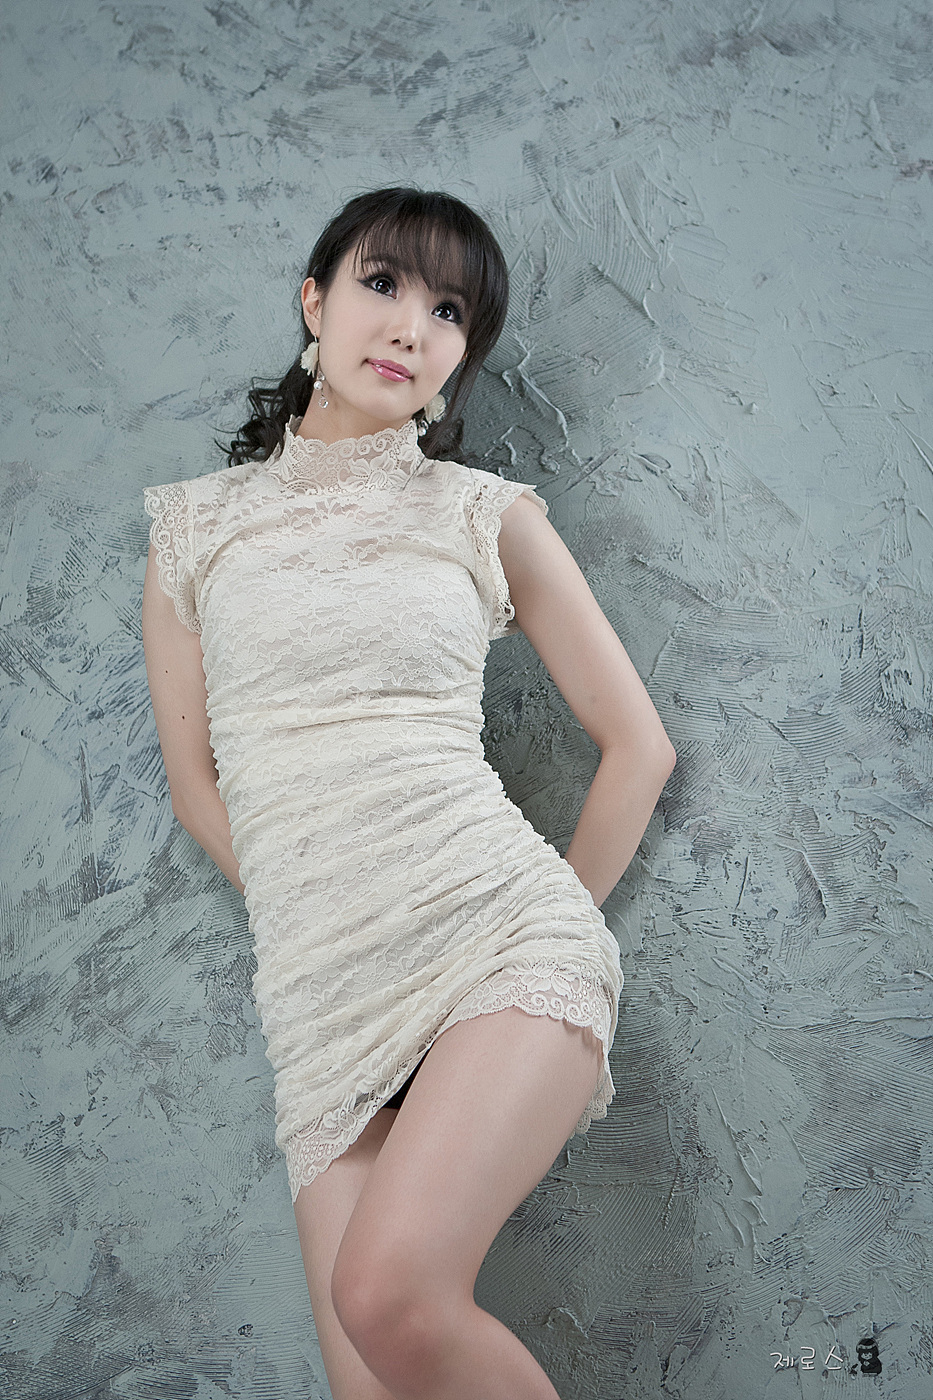 Spicy Korean Model Im Soo Yeon Photos